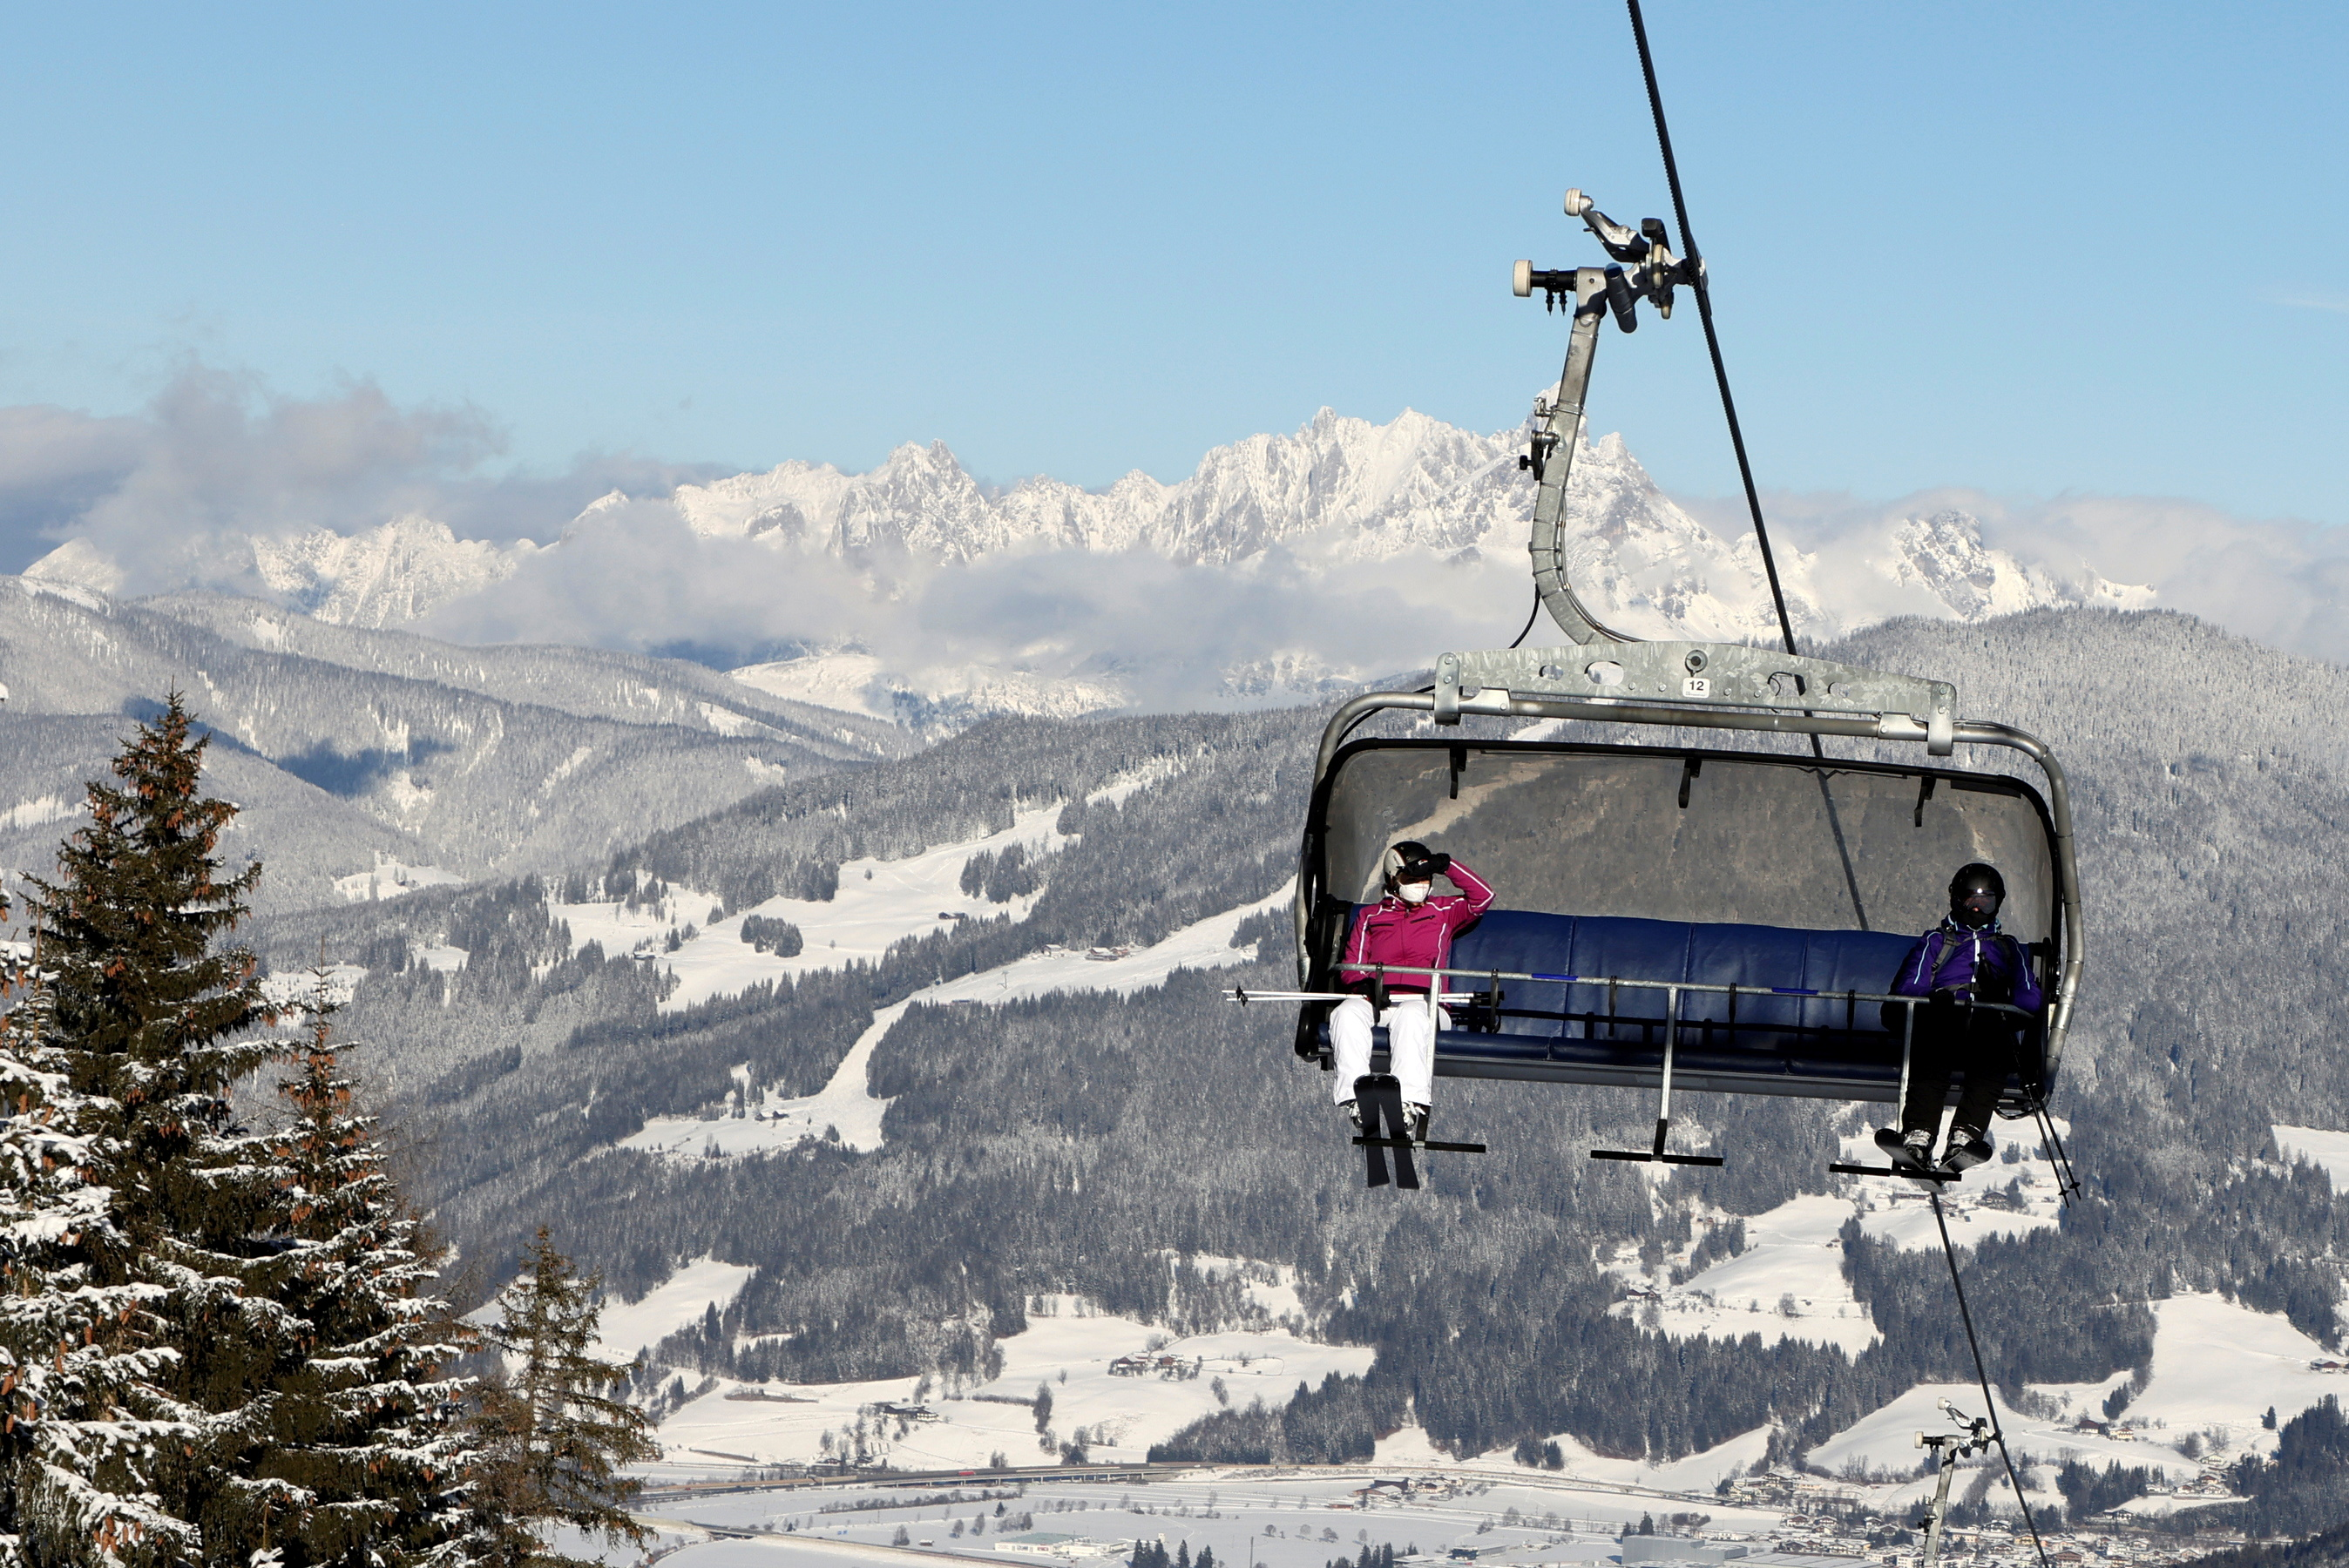 Skiers practise COVID-19 social distancing on a chairlift in Flachau, Austria January 15, 2021. REUTERS/Leonhard Foeger